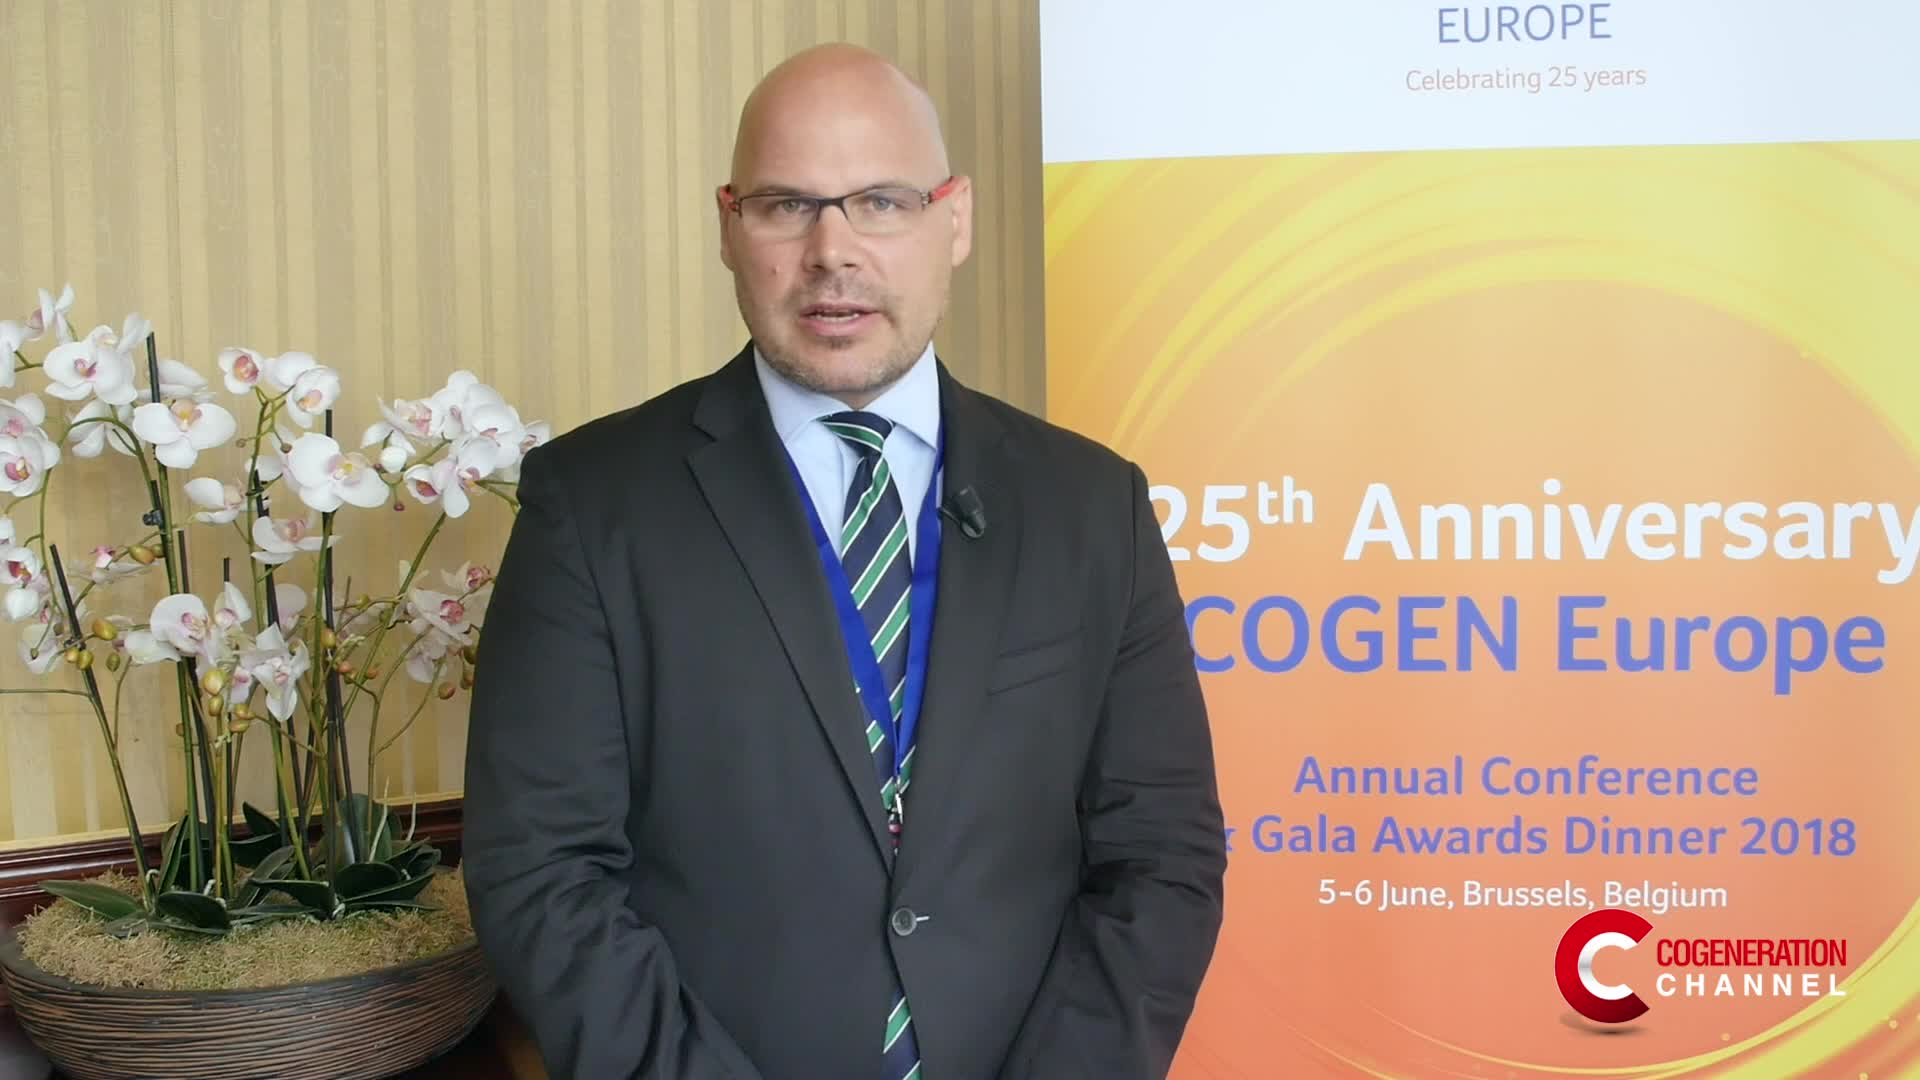 COGEN Europe: a new vision presented at the annual conference